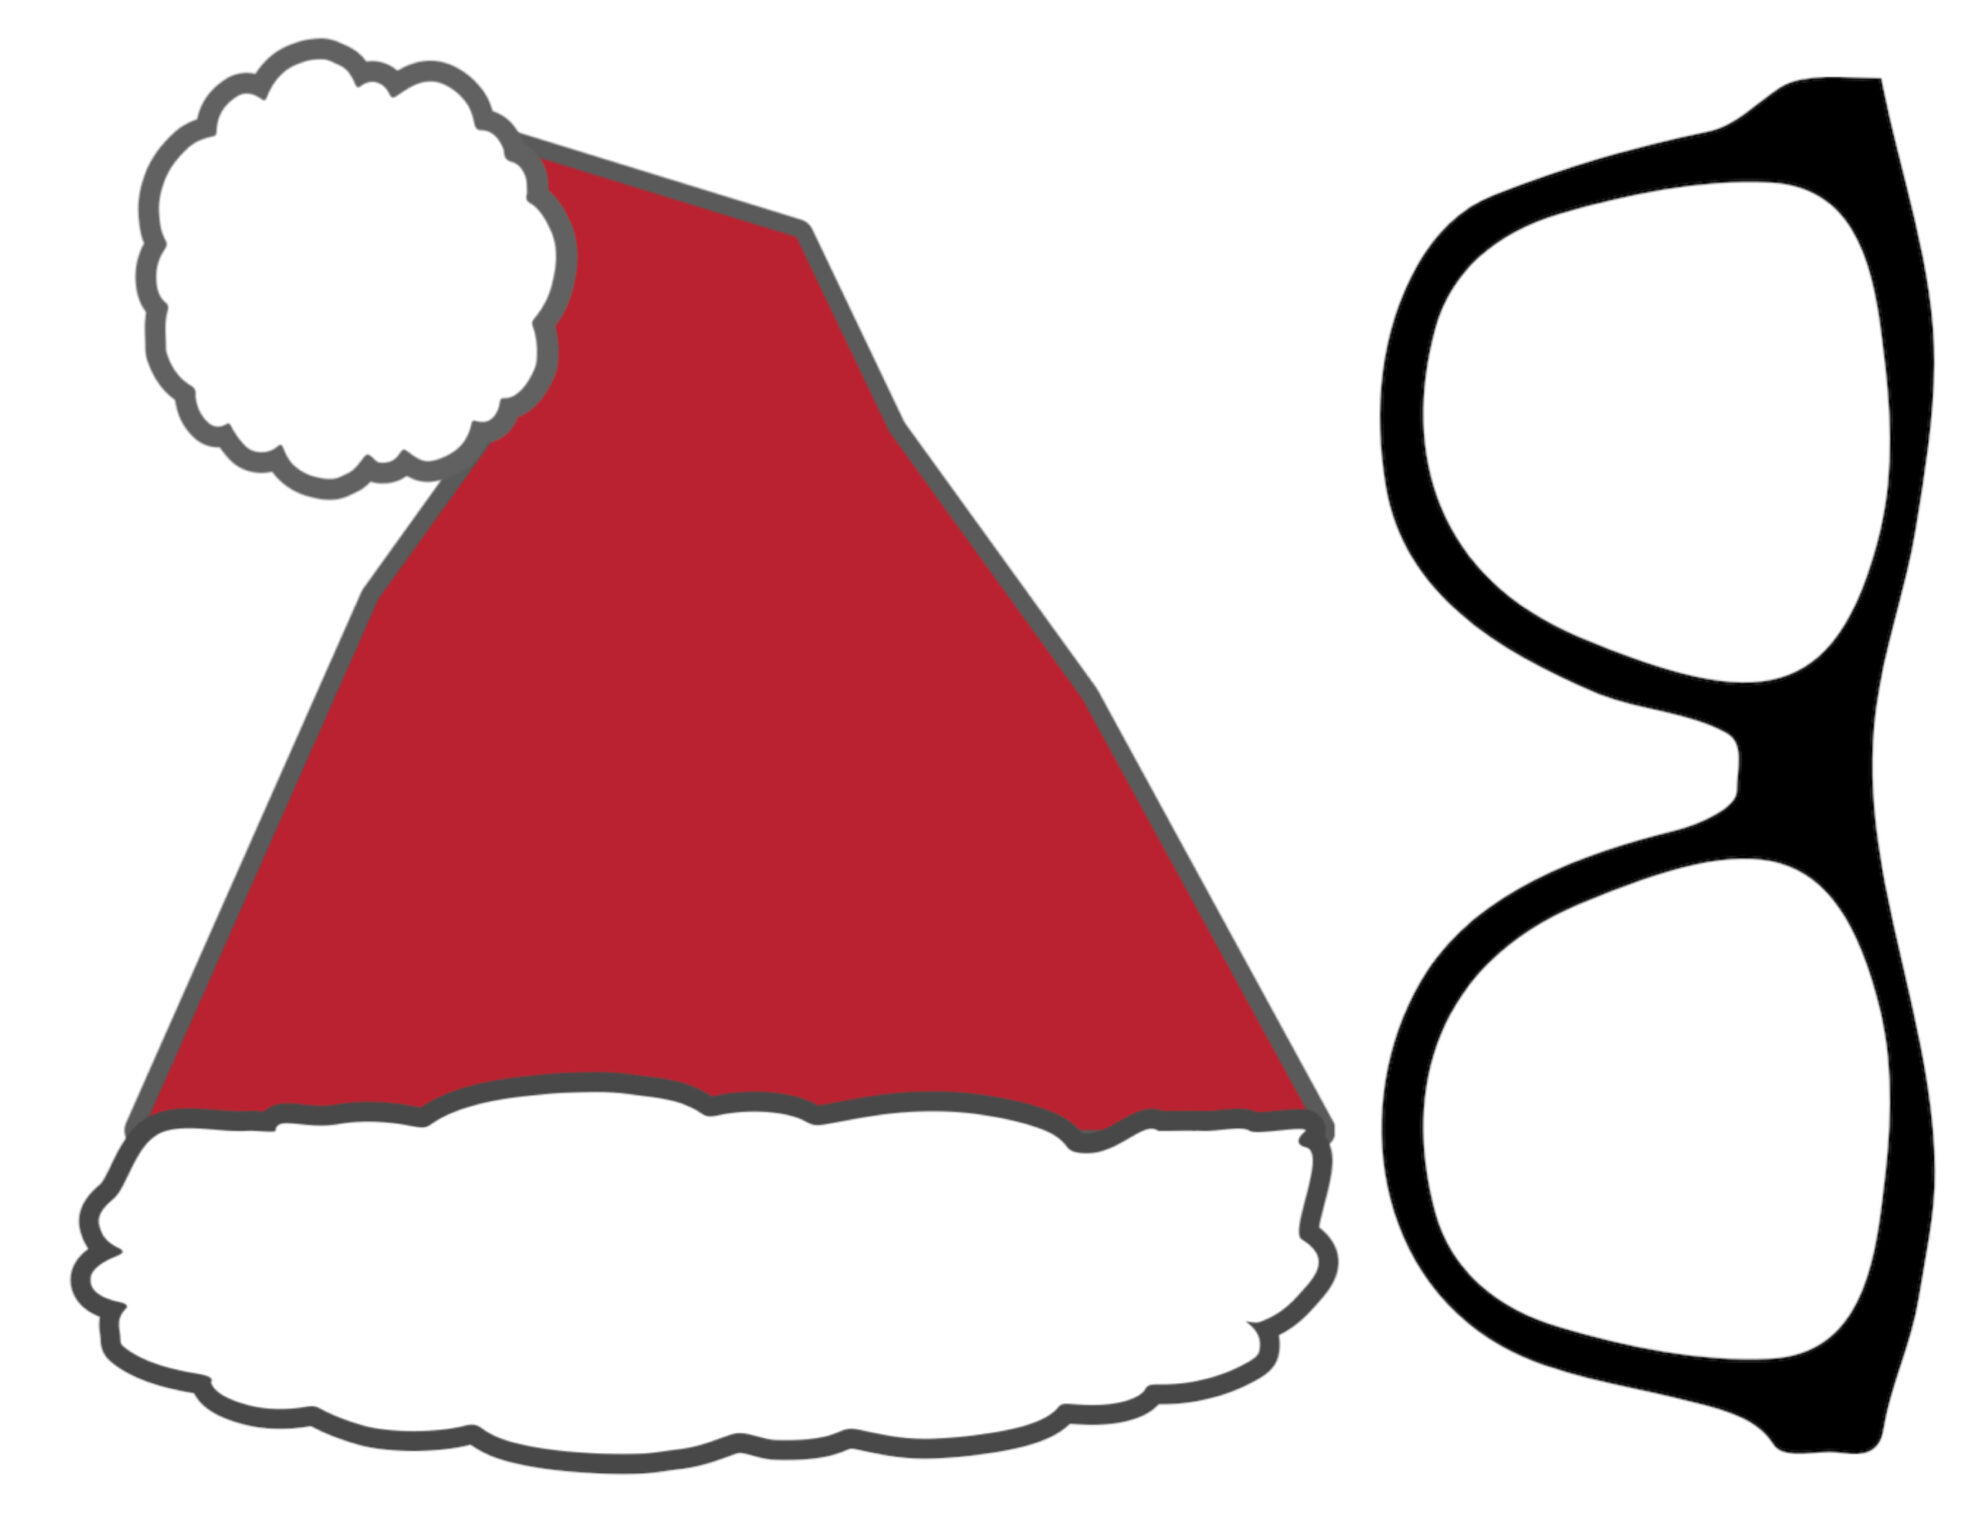 This is a graphic of Free Printable Christmas Photo Booth Props with regard to sample